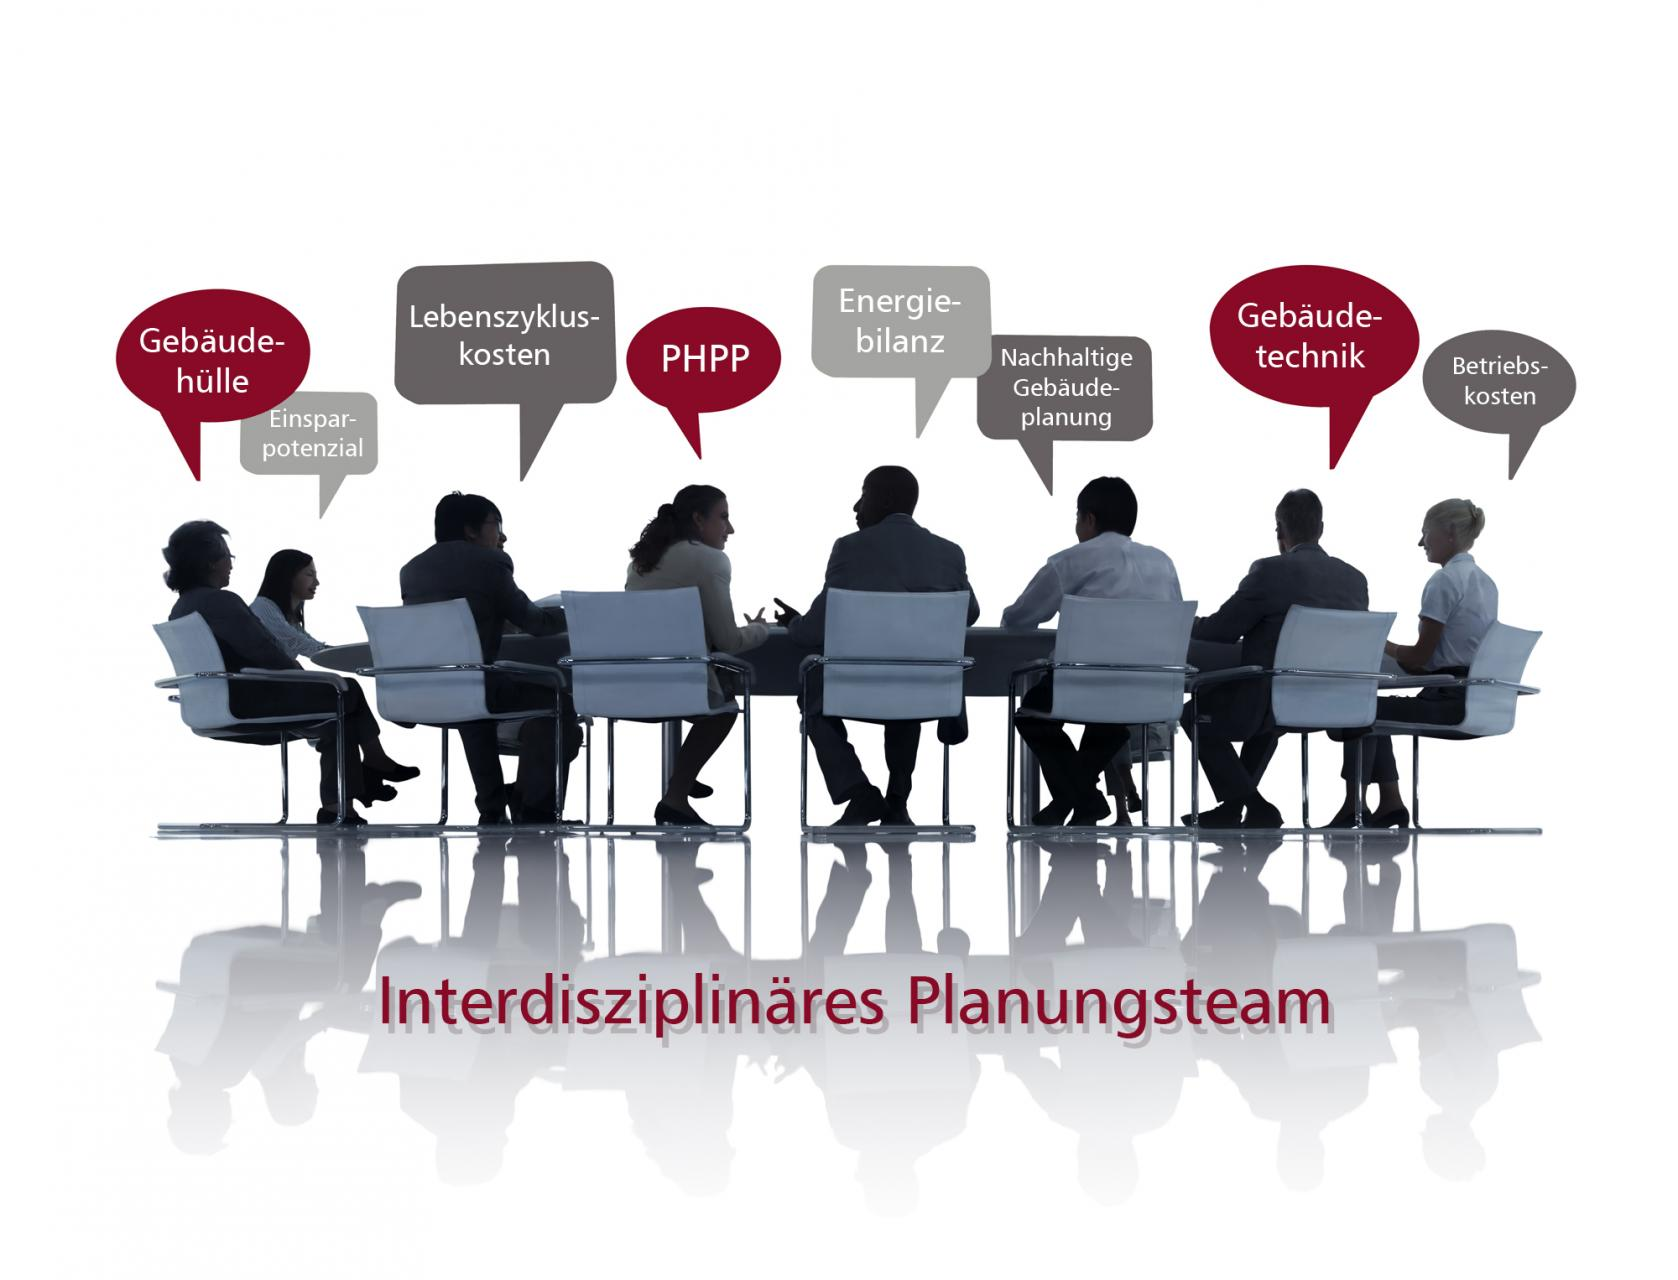 Interdisziplinaeres-Planungsteam